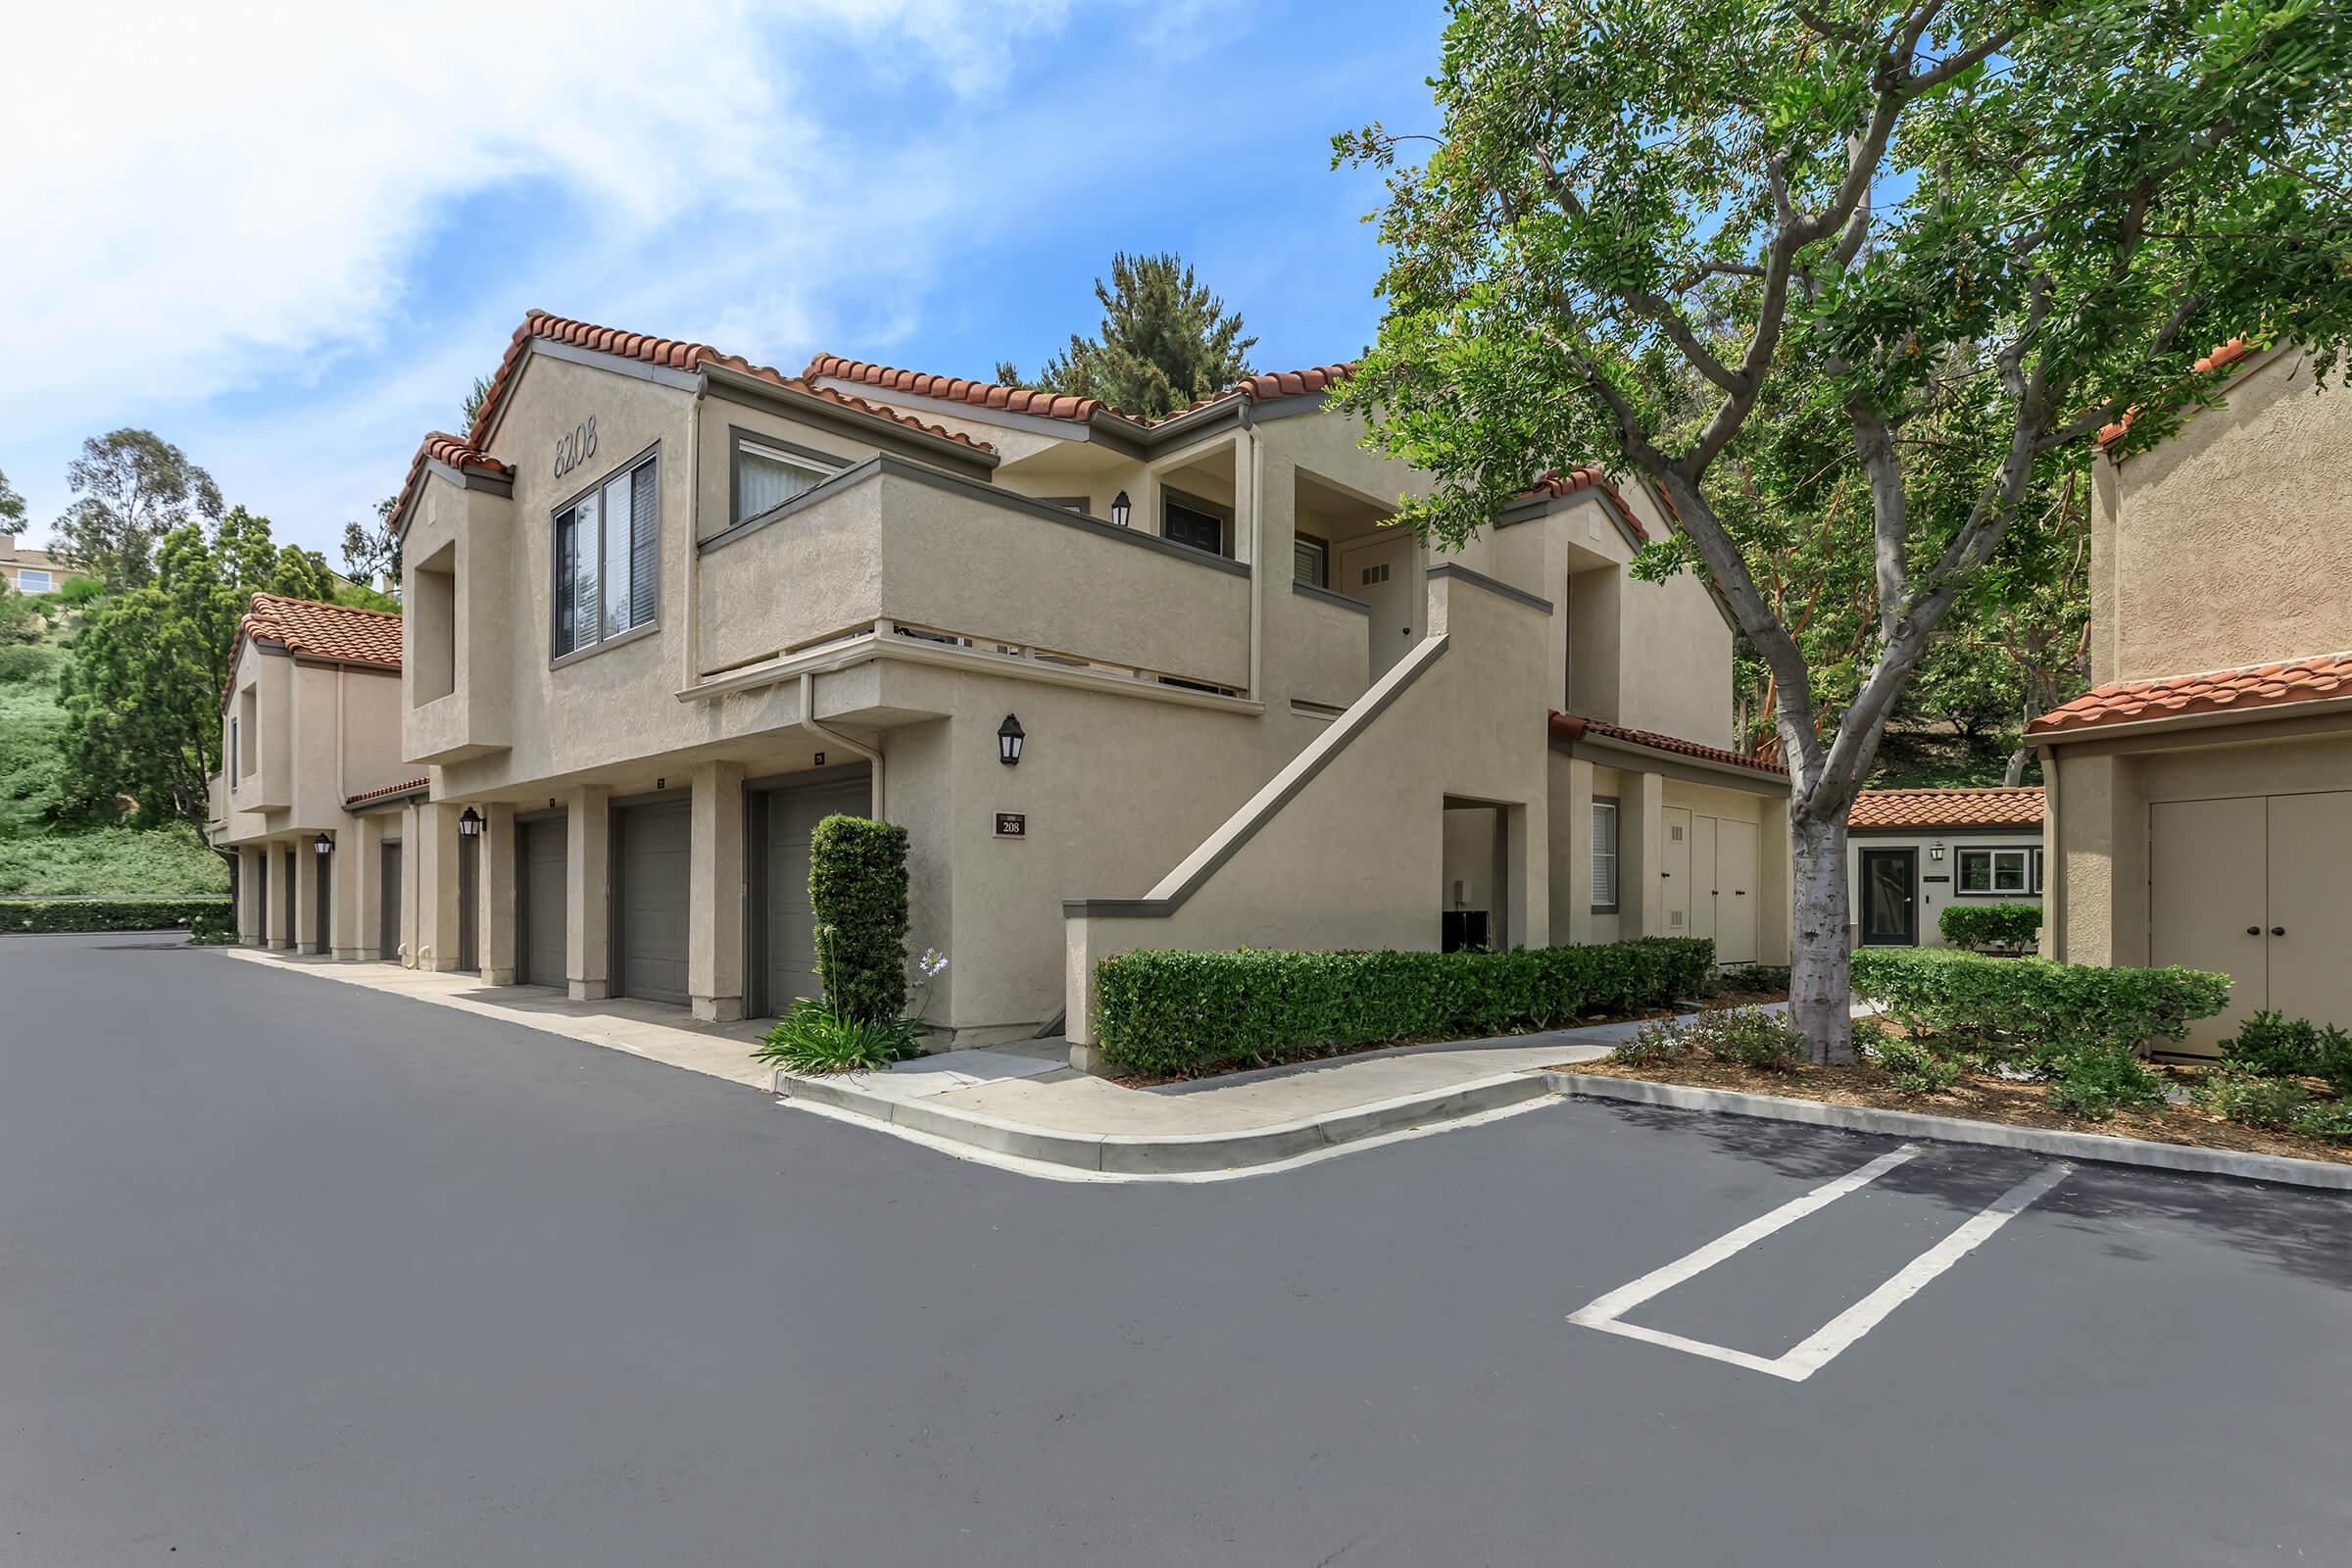 Sycamore Canyon Apartments community building with attached garages